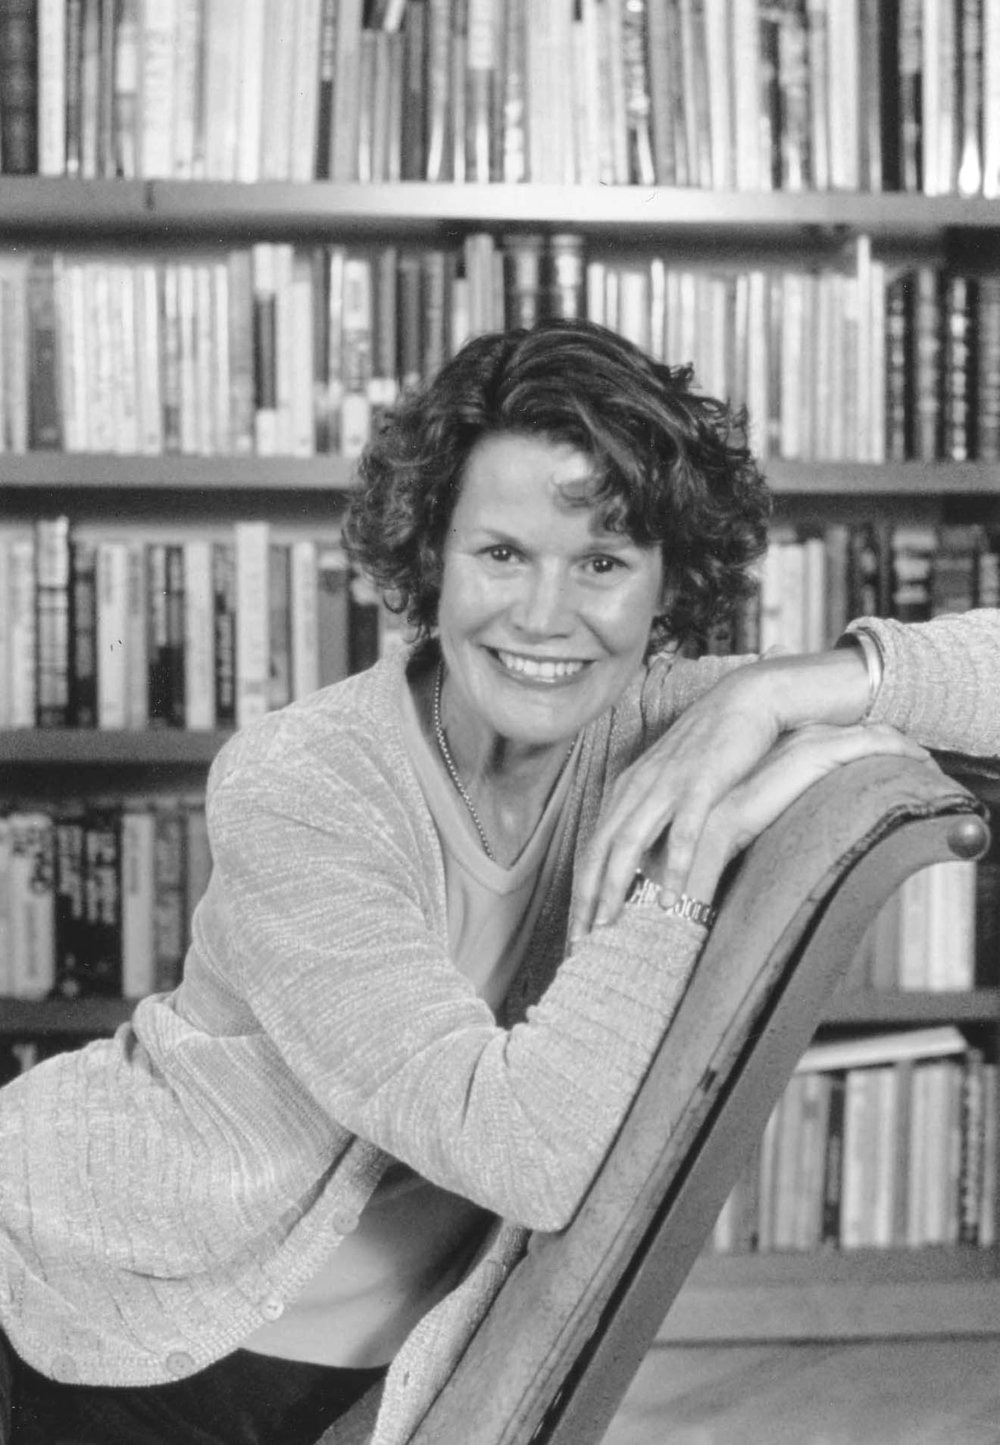 Judy Blume - One of the most widely read young adult authors